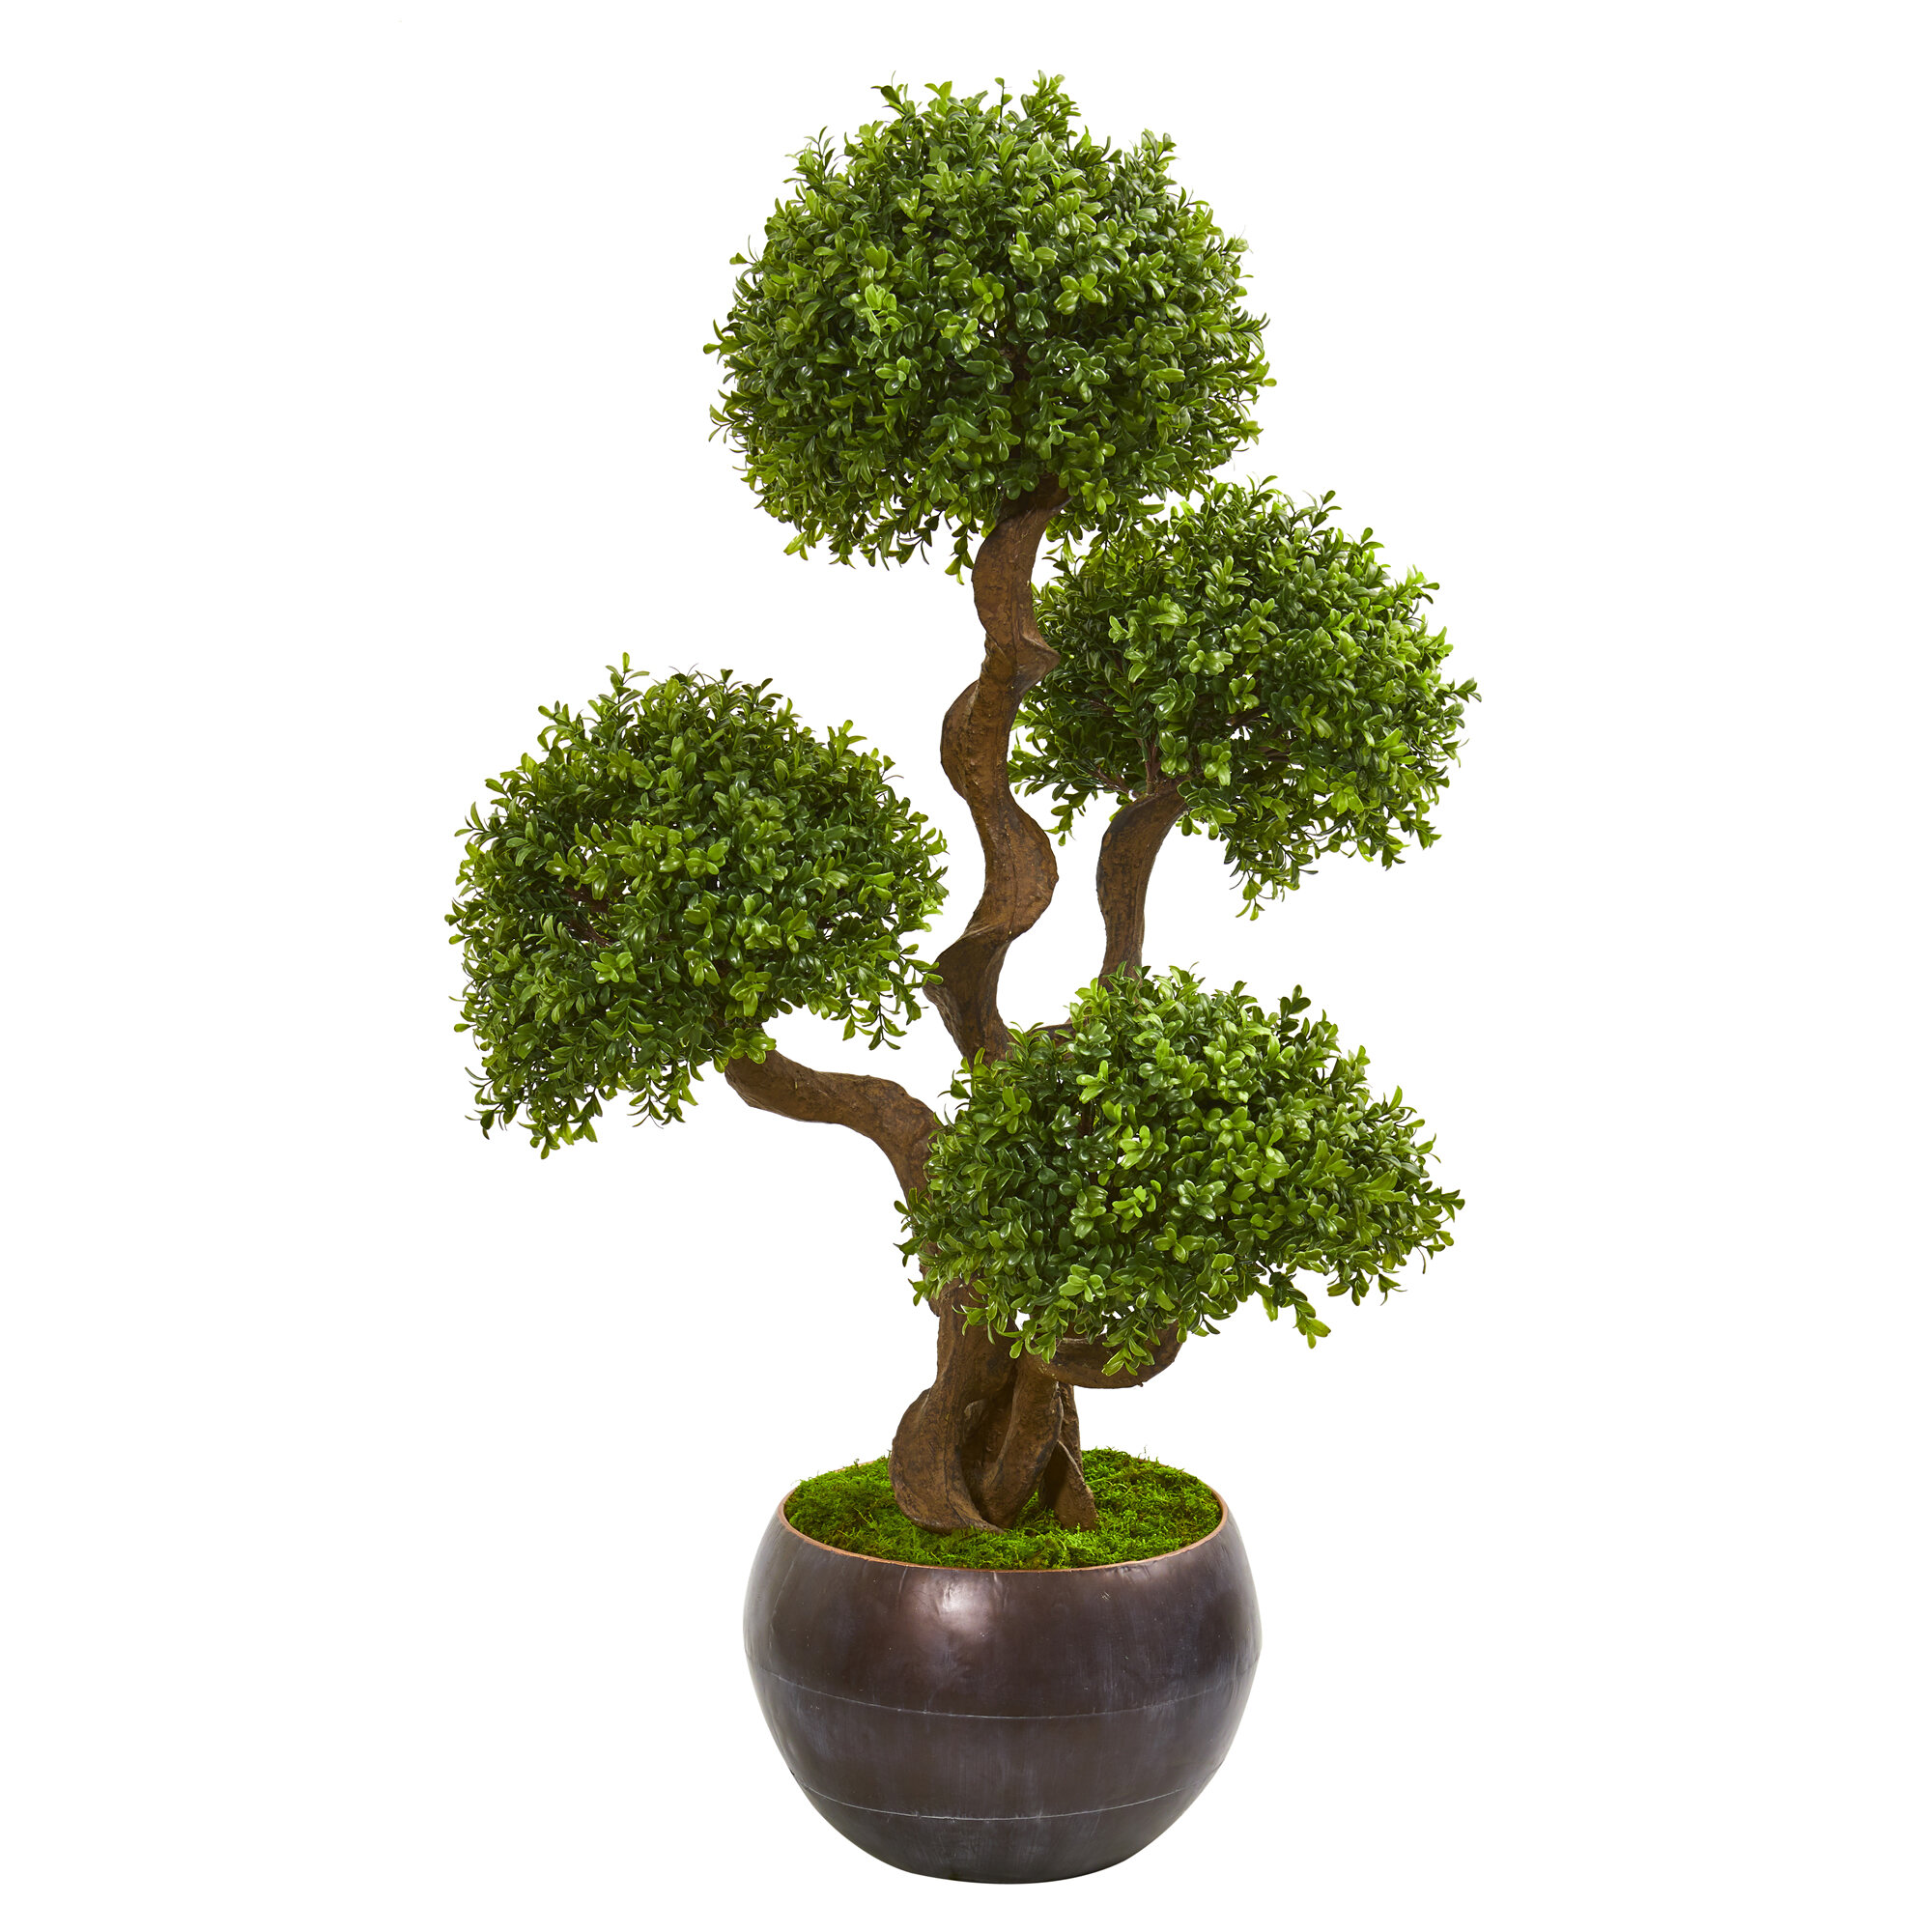 Canora Grey Artificial Four Ball Boxwood Topiary In Decorative Decorative Vase Wayfair